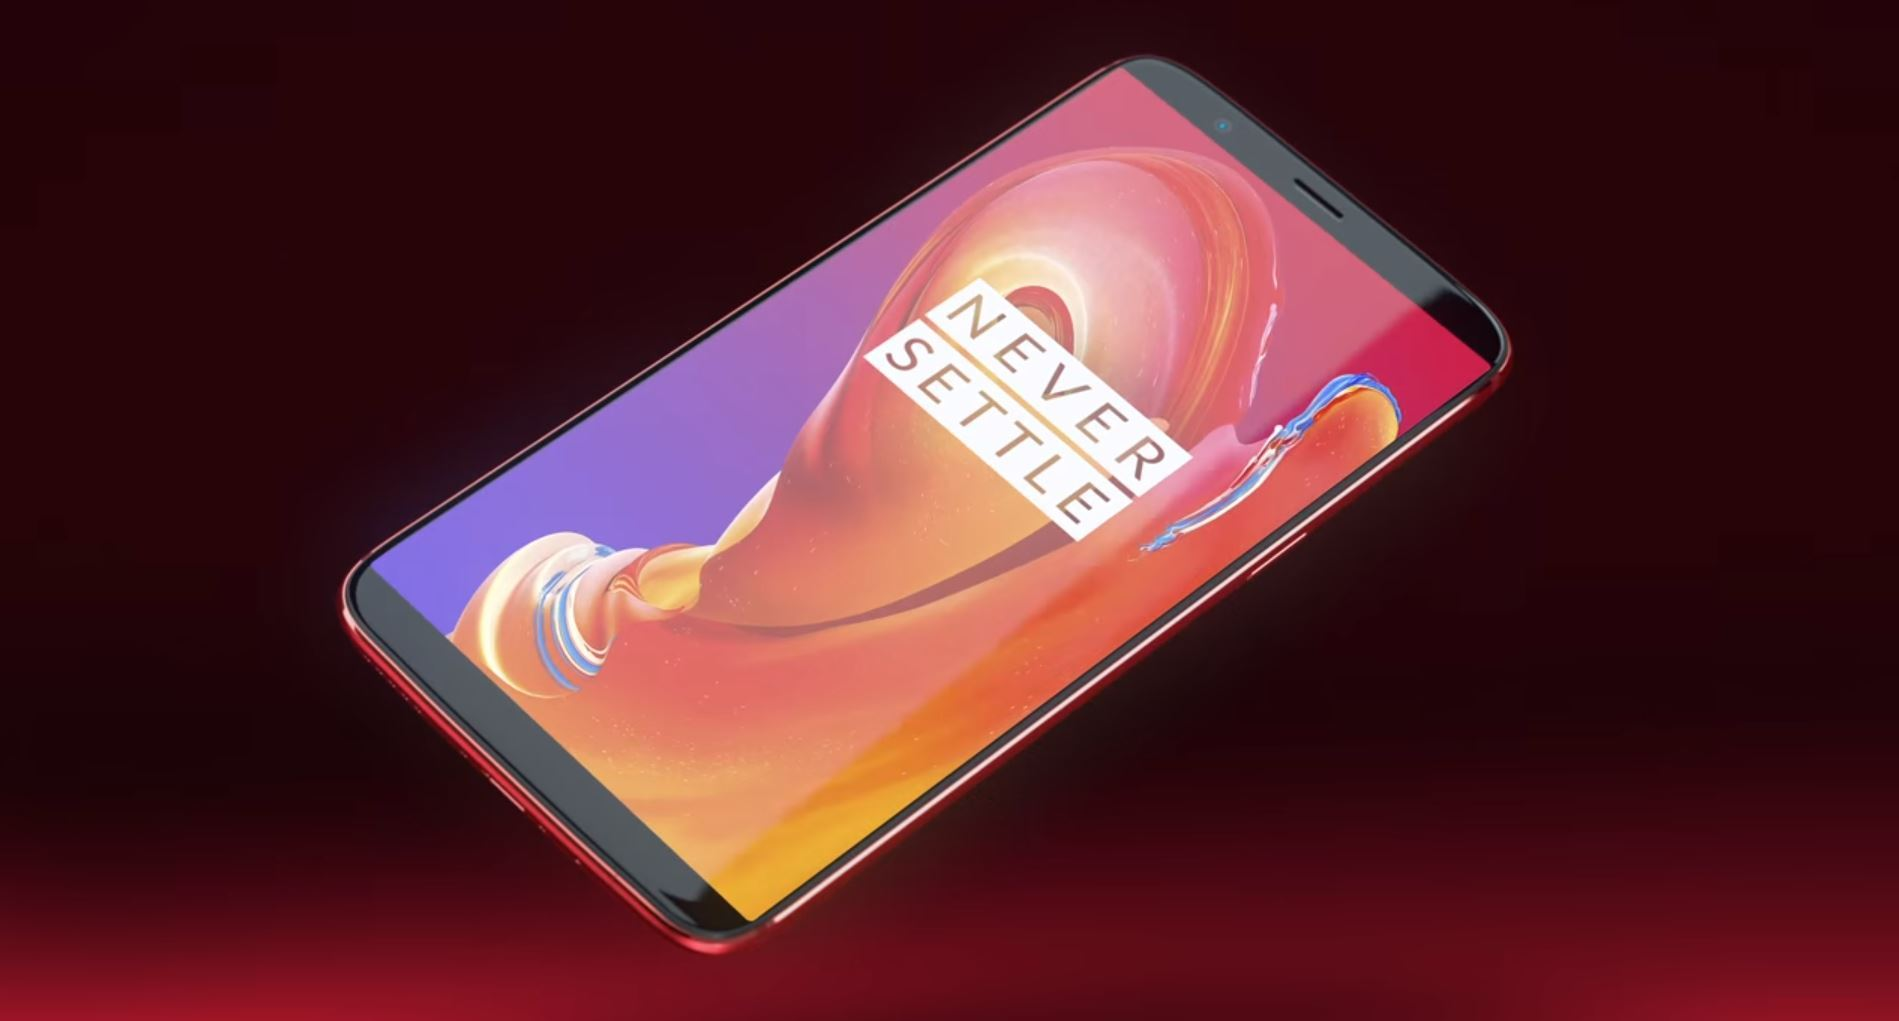 Le OnePlus 5T Lava Red Special Edition